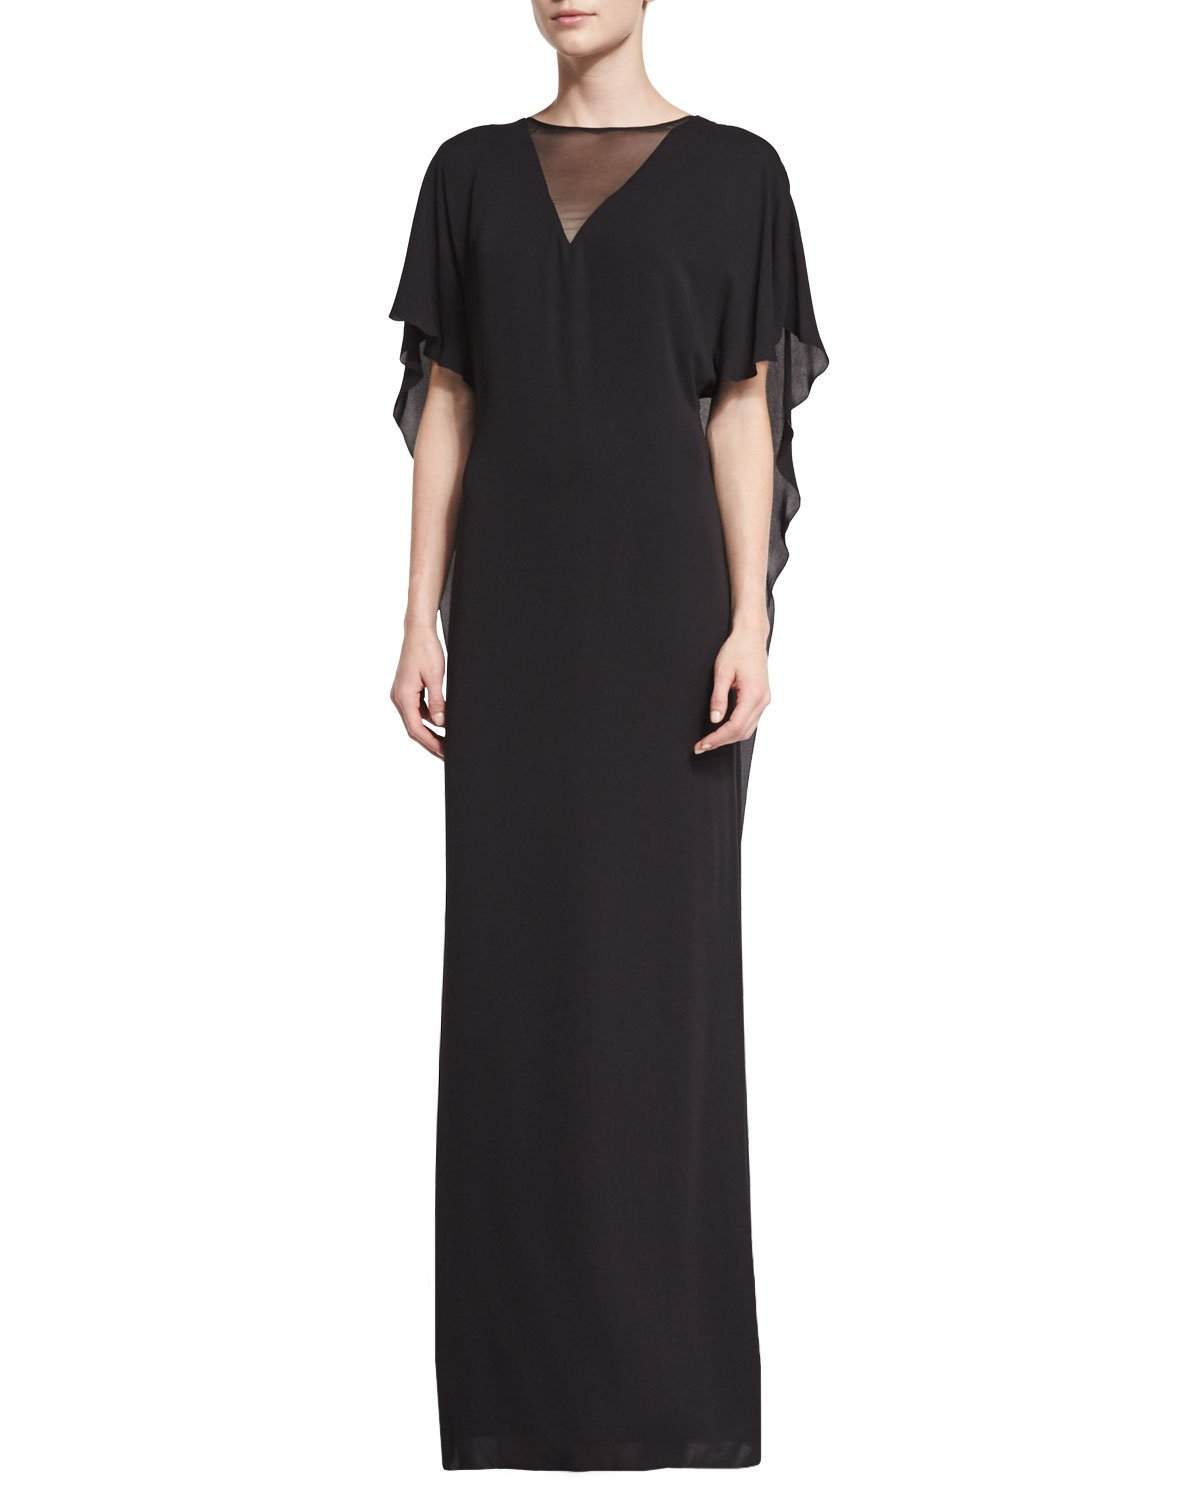 Halston Heritage Illusion-Neck Caftan-Style Evening Gown (2, Black) by Halston Heritage